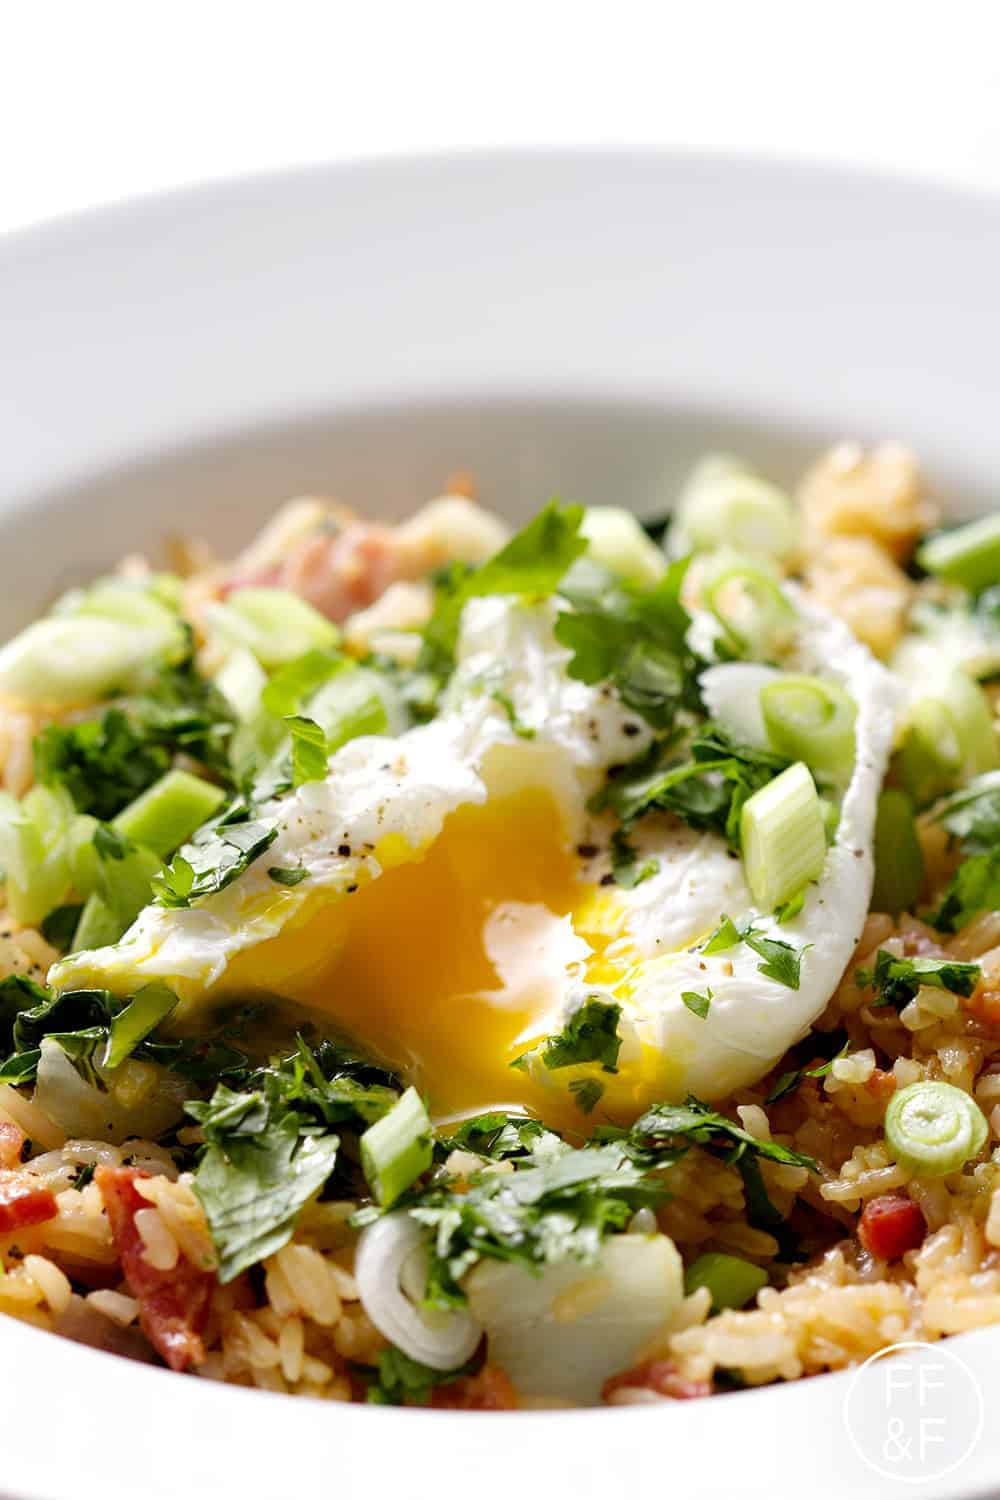 Spicy Bok Choy and Bacon Fried Rice from foodfashionandfun.com